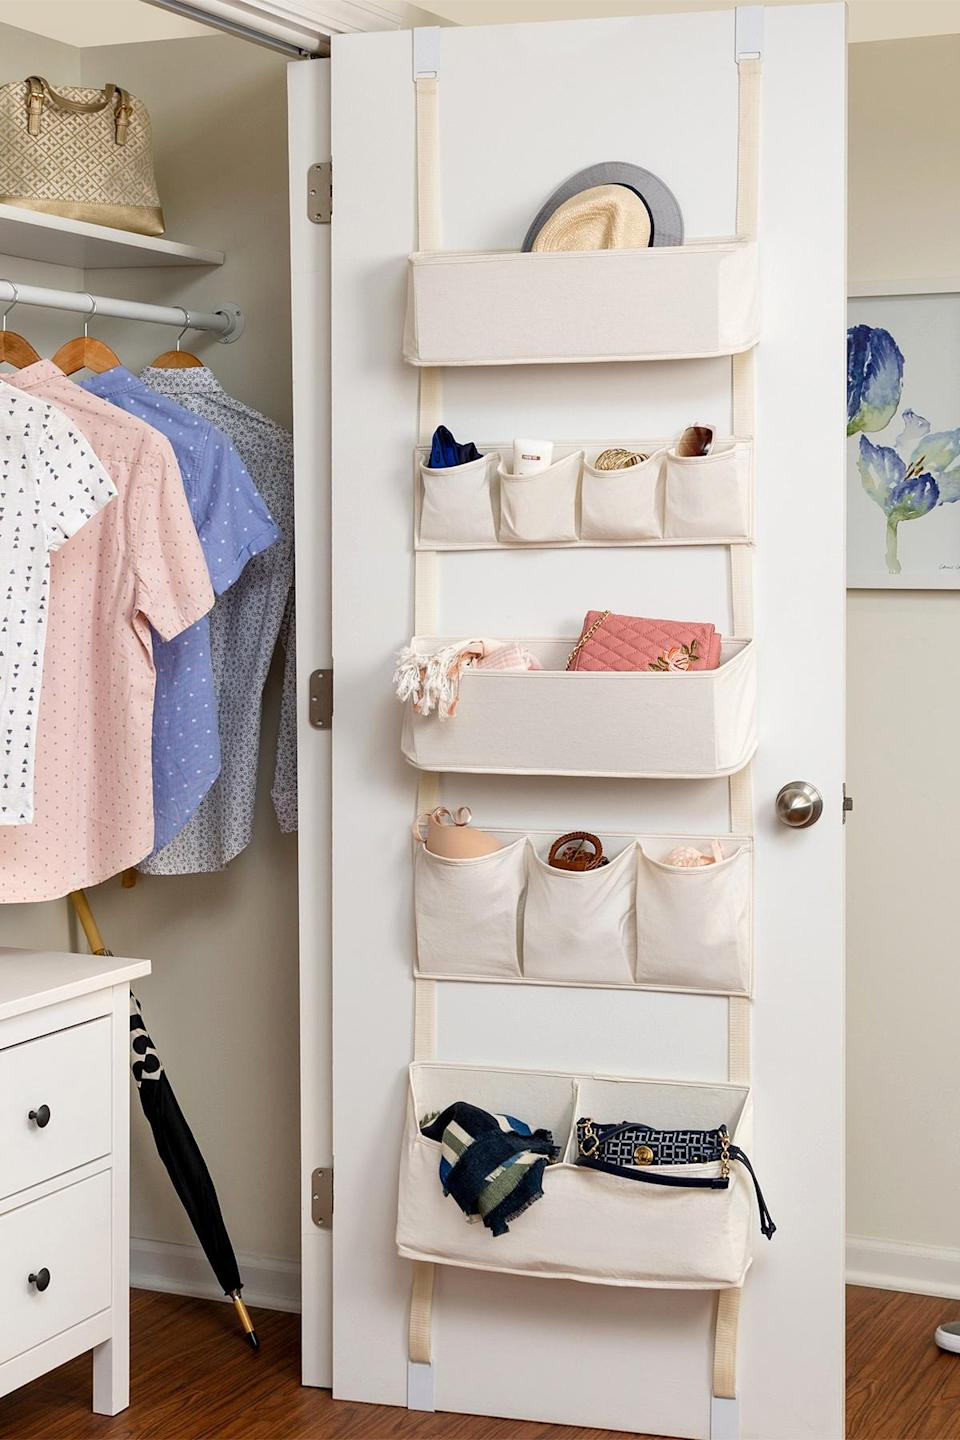 "<p>Take advantage of deeper closets with an over-the-door organizer that lets you keep small items organized—and out of sight. From jewelry, scarves, and socks to makeup, sunglasses, and wristlets, pockets in varying sizes offer space for all of your favorite accessories.</p> <p><strong><em>Shop Now:</em></strong><em> Honey-Can-Do Over the Door Hanging Organizer, $49.97, <a href=""https://www.pjtra.com/t/8-10134-131940-120793?sid=MSL21DormRoomStorageIdeasThatMaketheMostofYourSmallSpacesbamseyStoGal7846410202007I&url=https%3A%2F%2Fwww.nordstromrack.com%2Fshop%2Fproduct%2F3157076%3Fcolor%3DNATURAL"" rel=""nofollow noopener"" target=""_blank"" data-ylk=""slk:nordstromrack.com"" class=""link rapid-noclick-resp"">nordstromrack.com</a>.</em></p>"